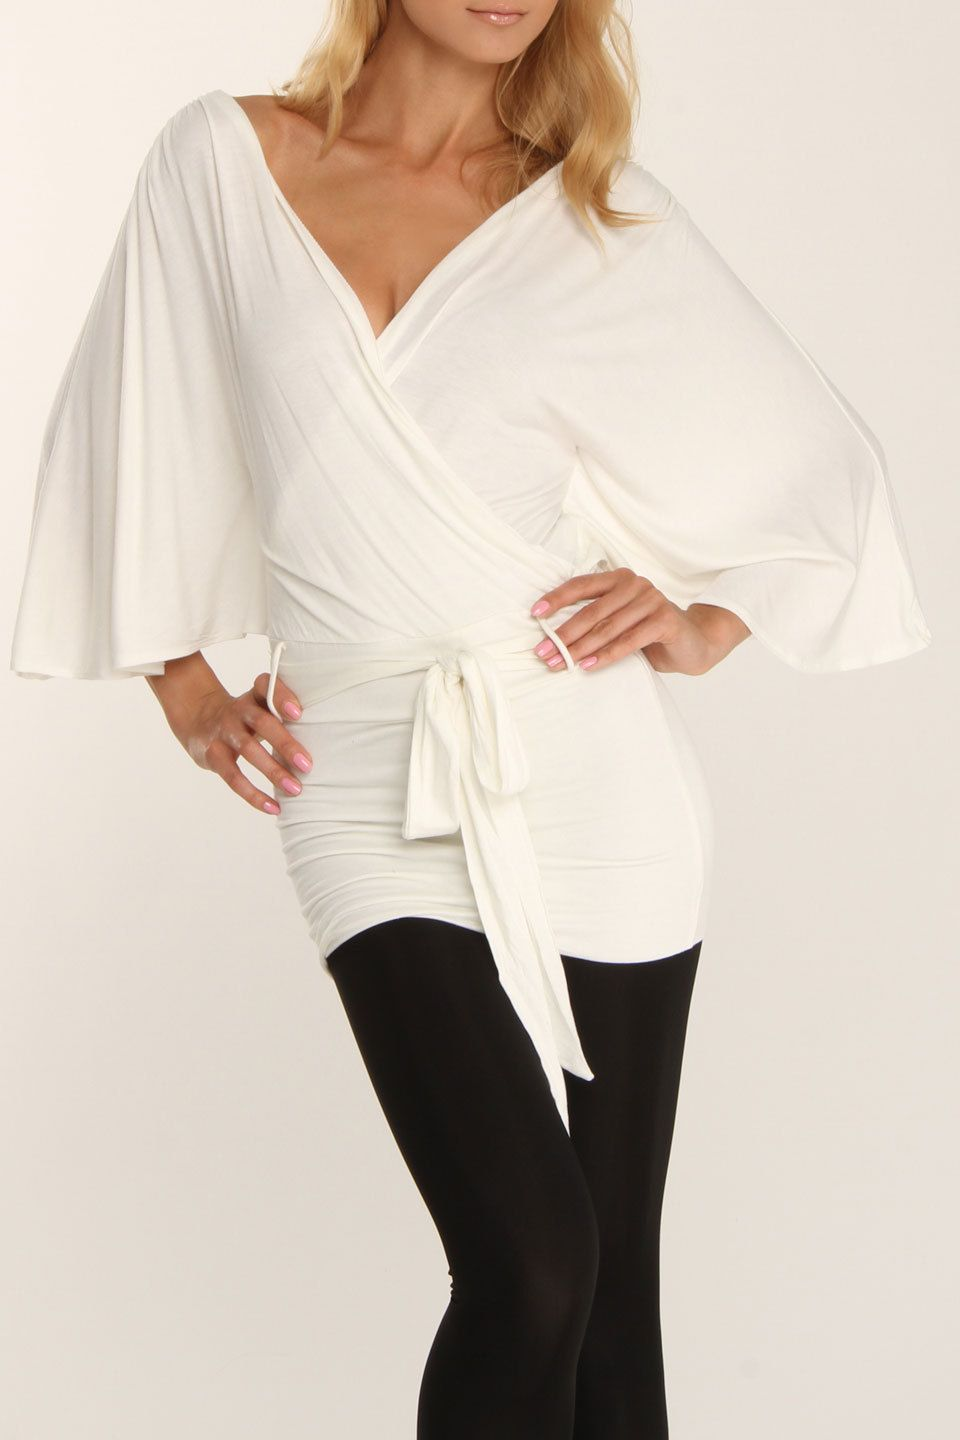 Night to Class out: tunic top